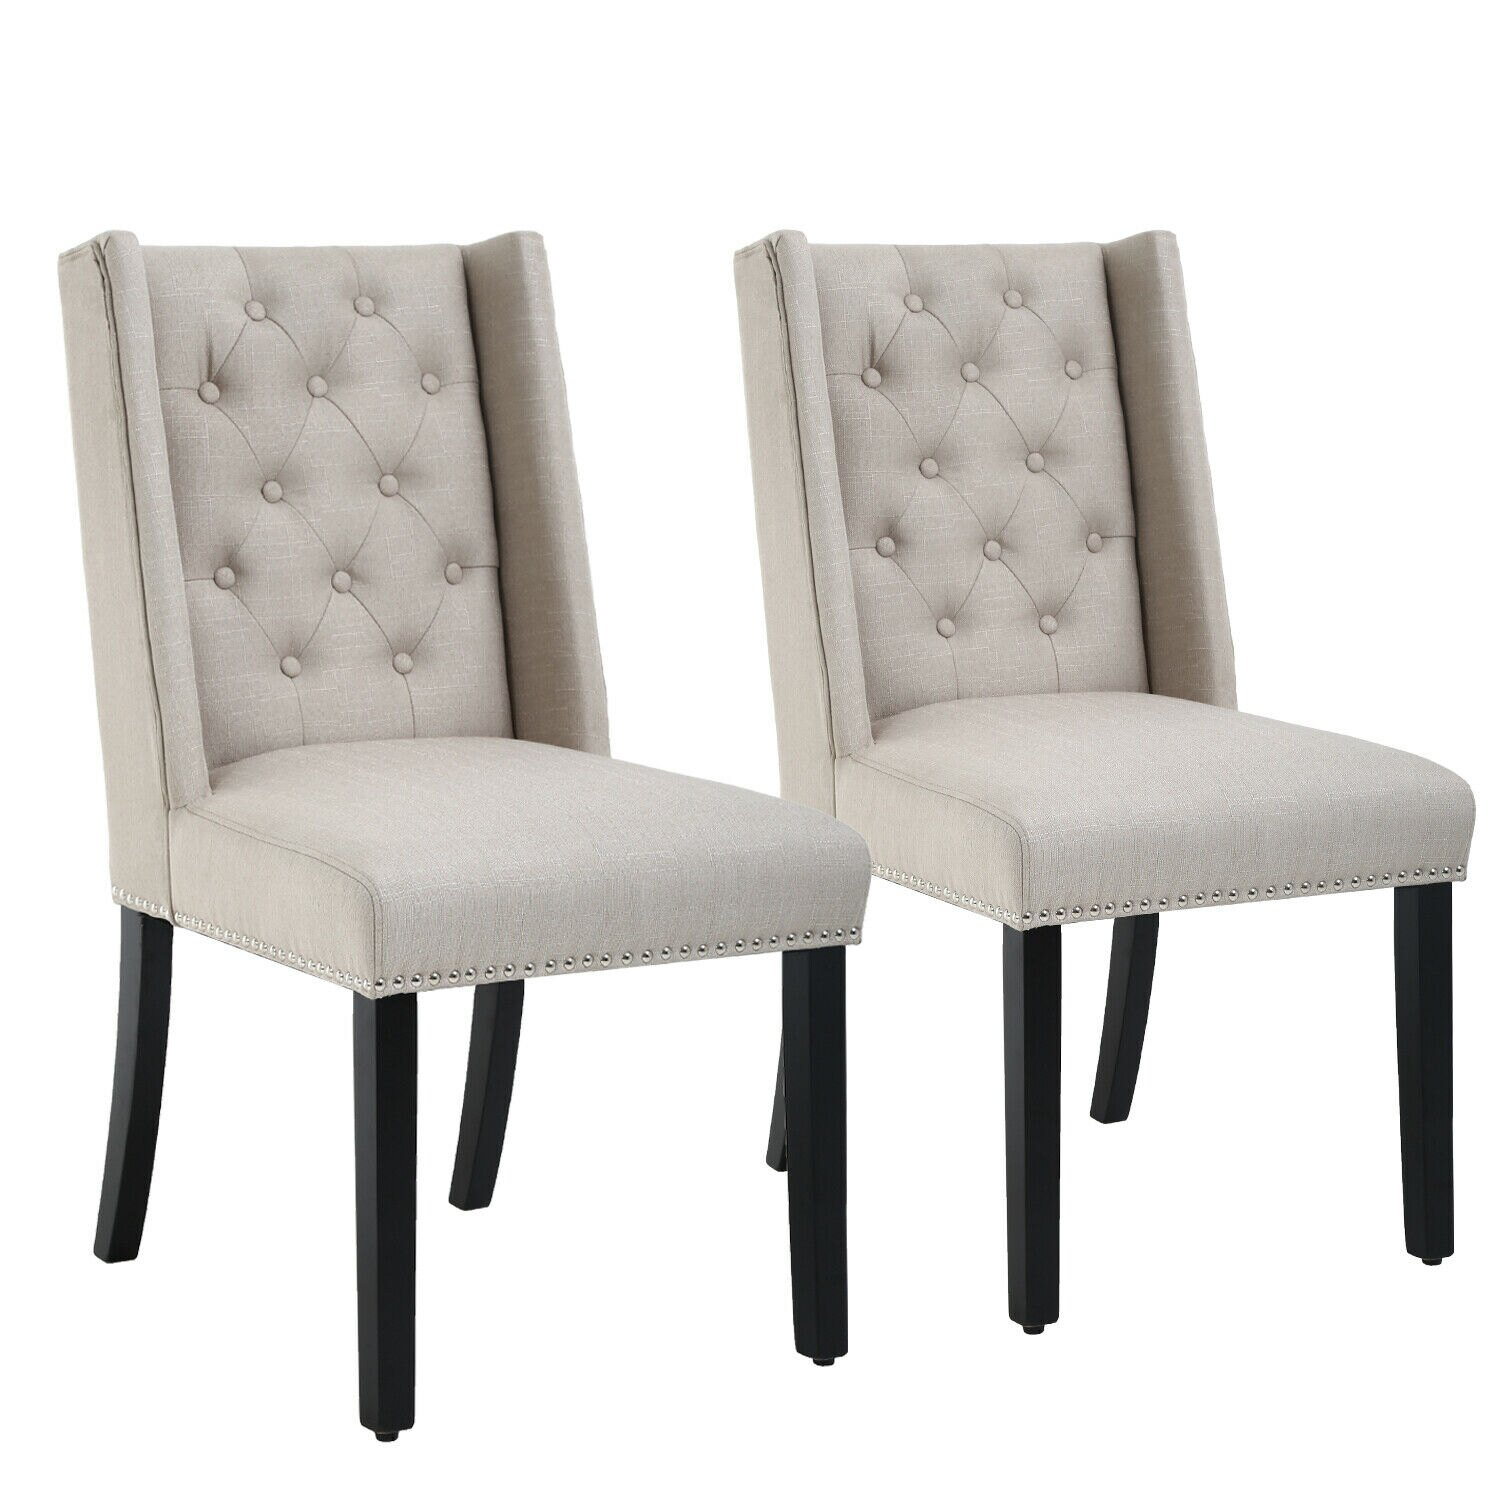 Dining Chairs Set Of 2 Dining Room Chairs Mid Century Modern Chair Upholstered